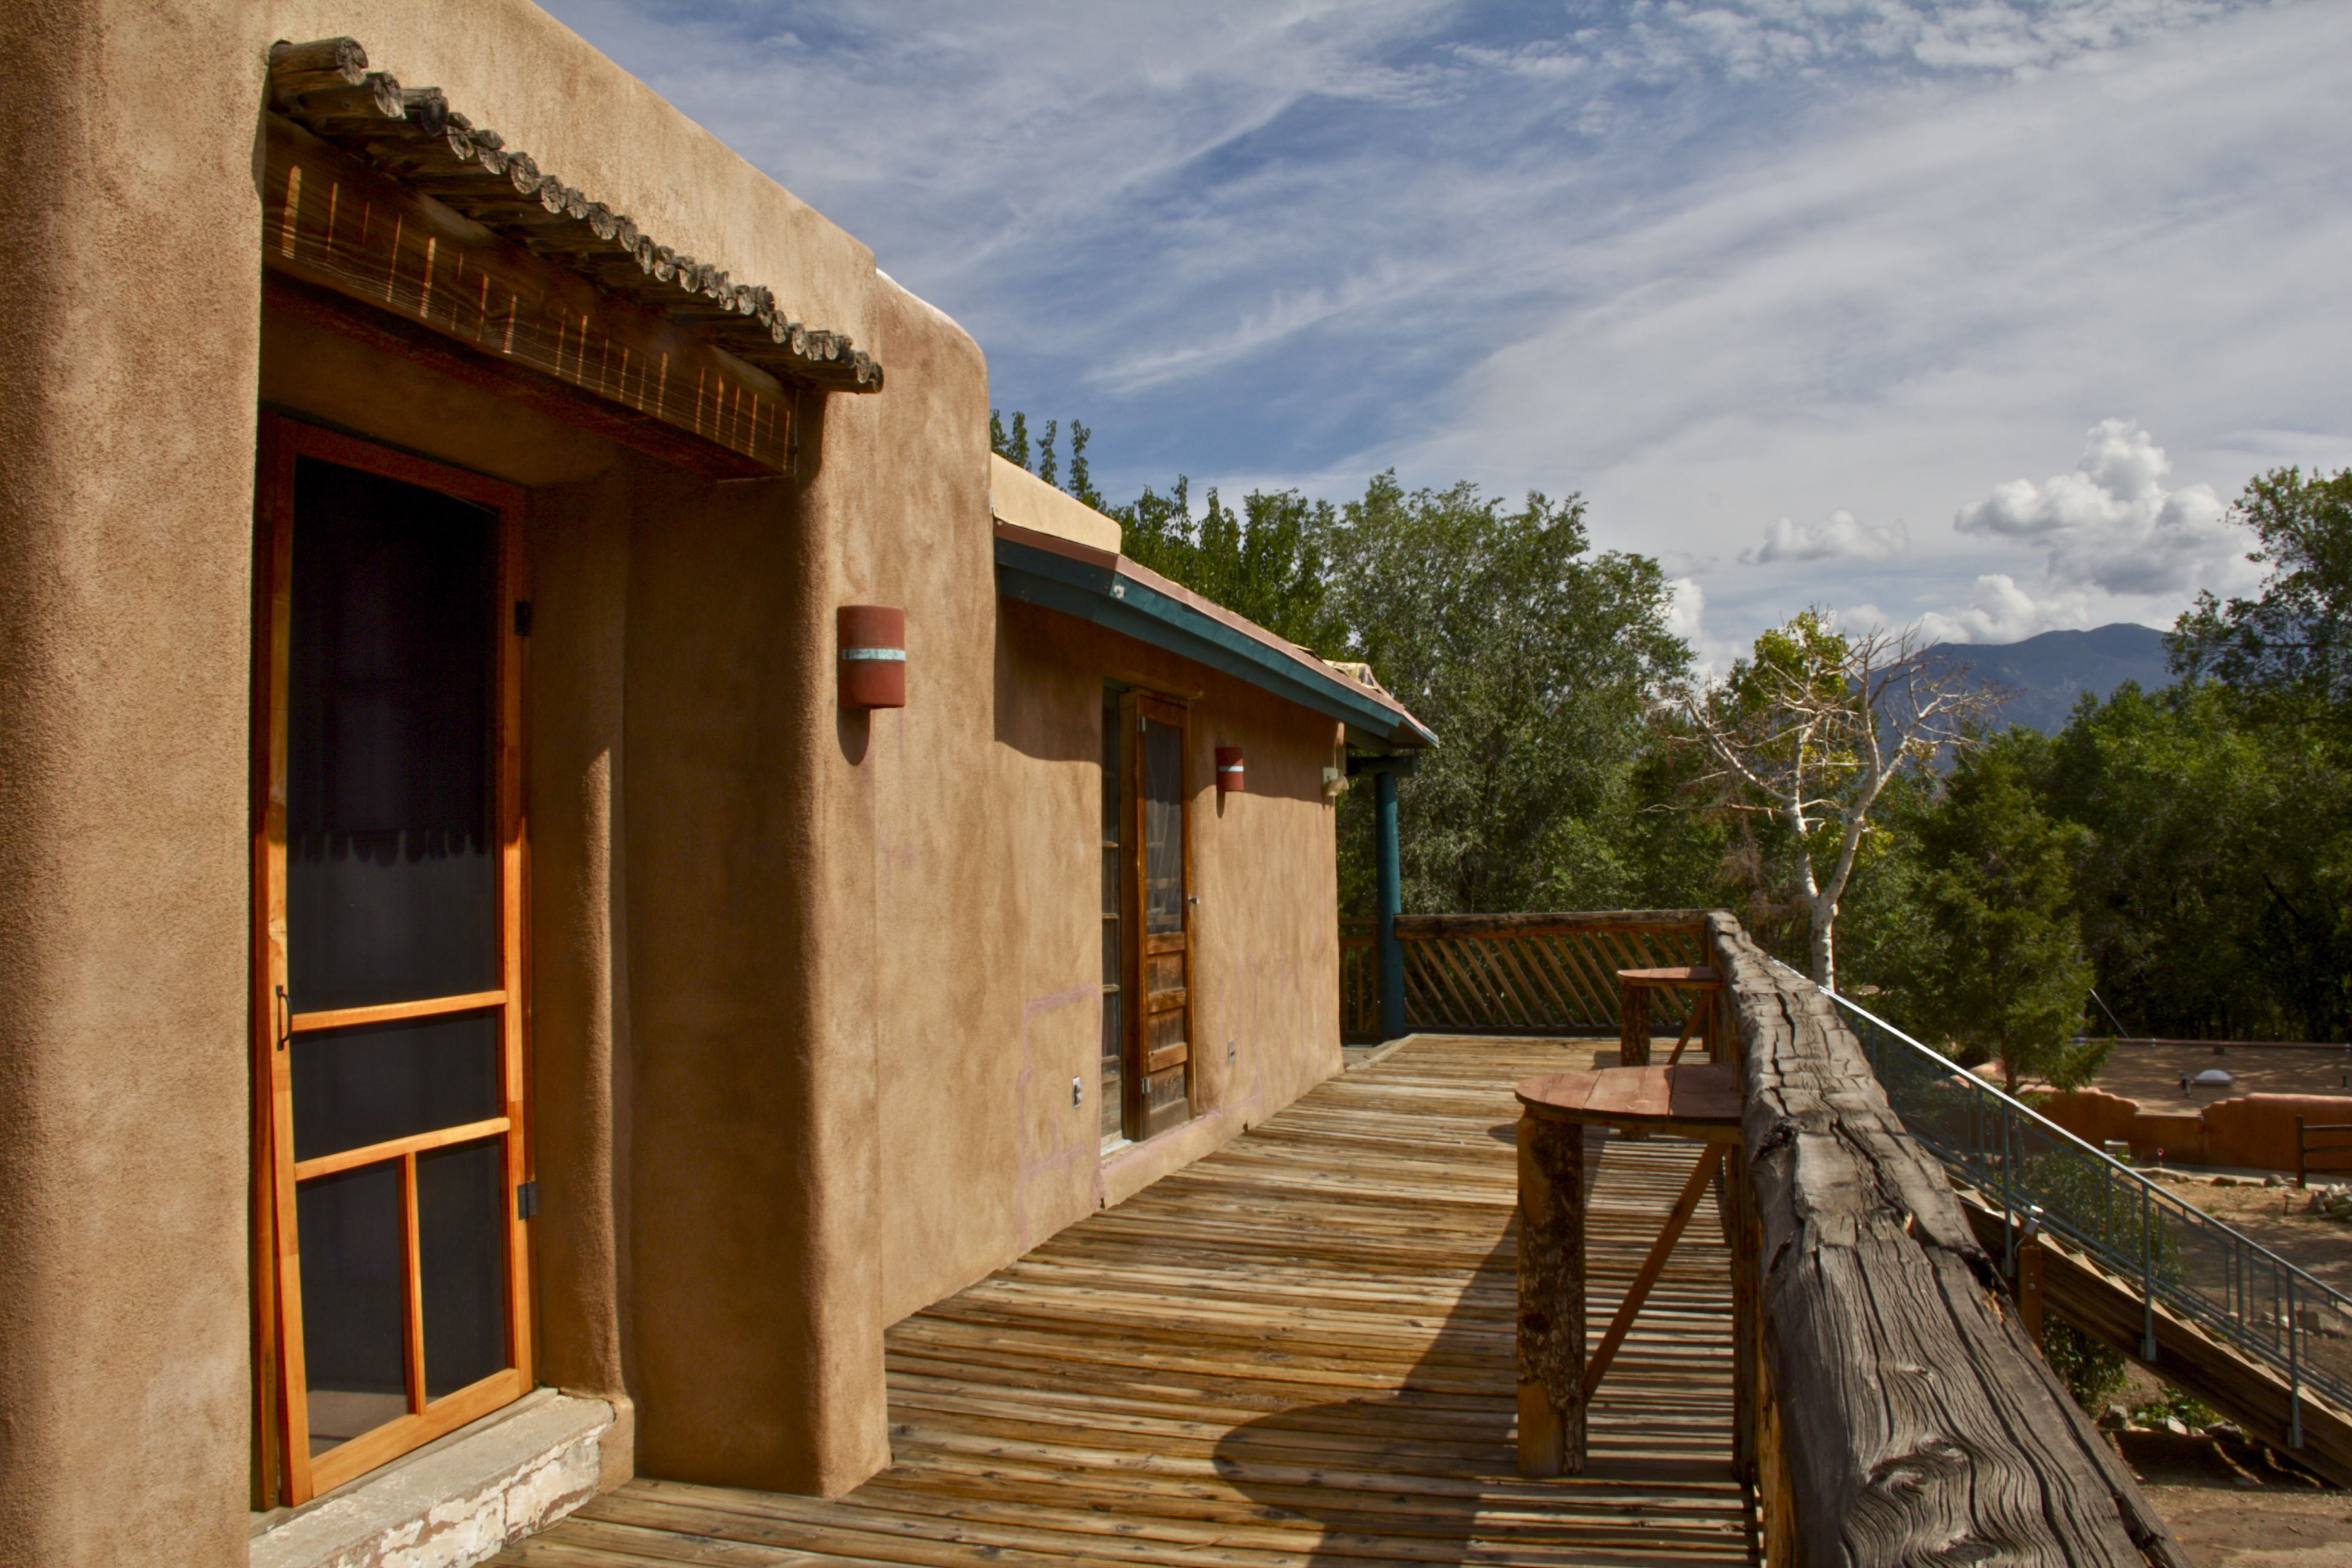 San Geronimo Lodge, New Mexico